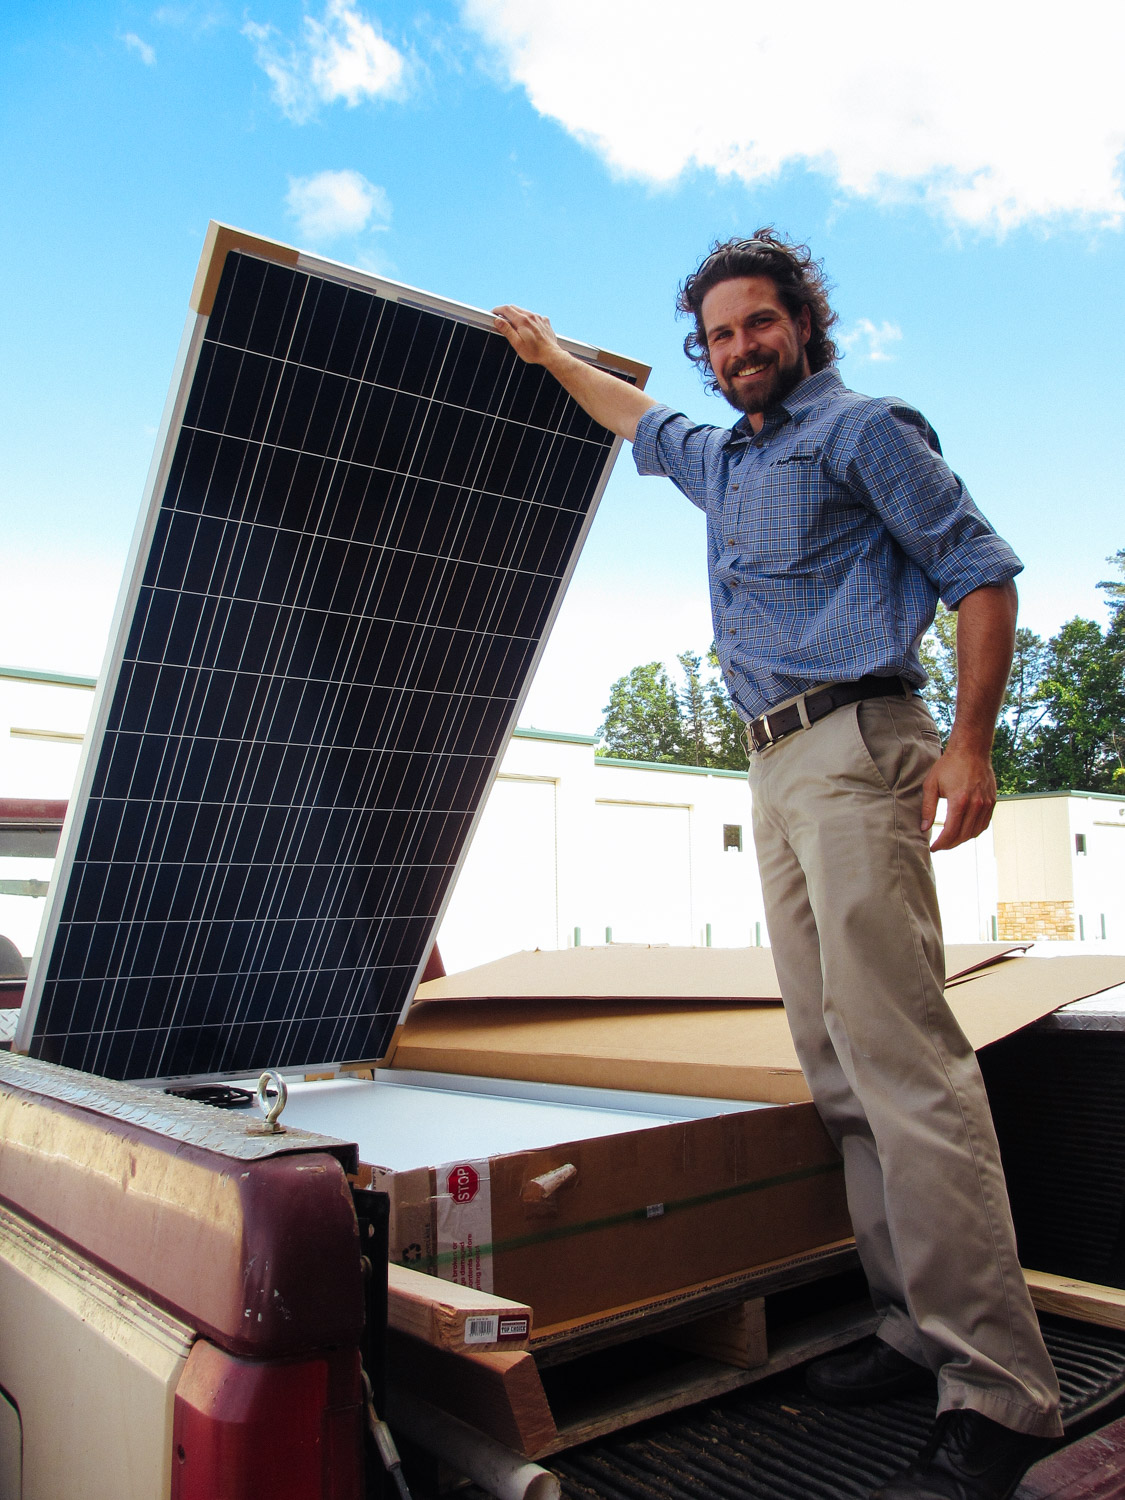 Taking delivery of our solar panels.